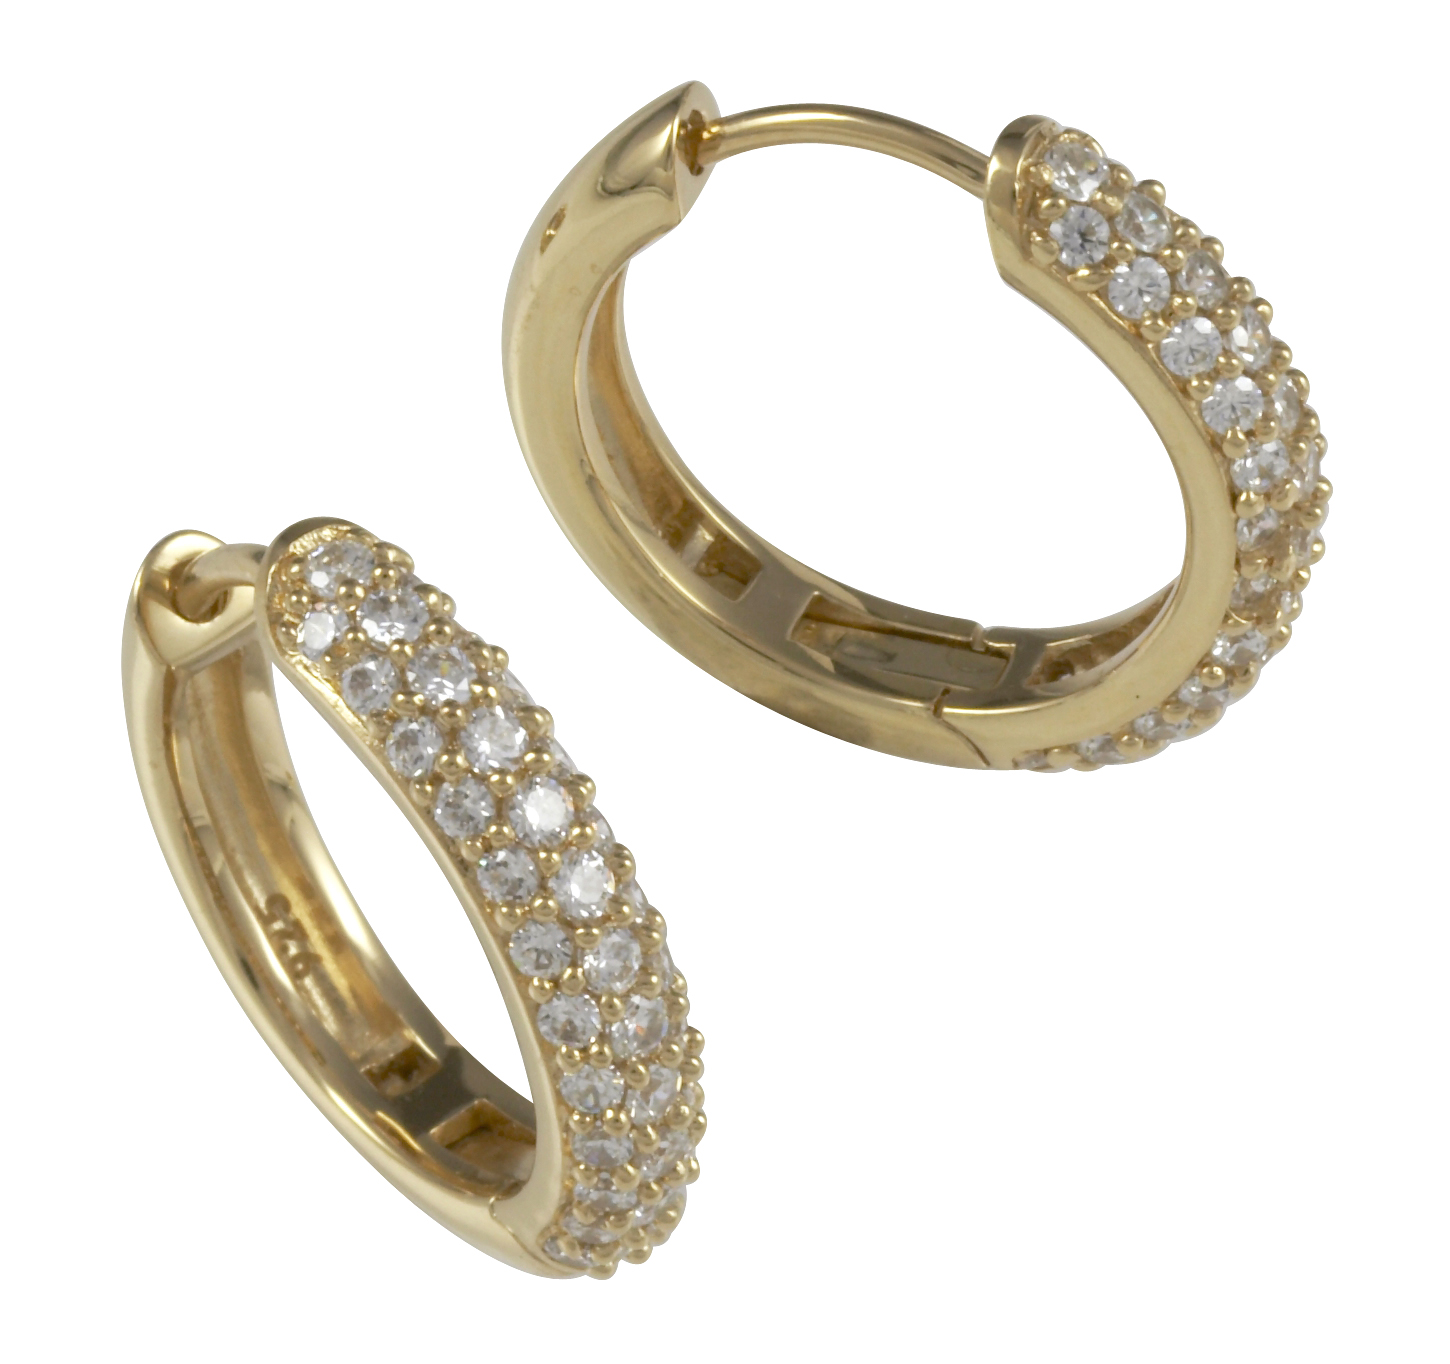 Cai Jewels Gold Plated Sterling Silver White CZ Large Hoop Earrings